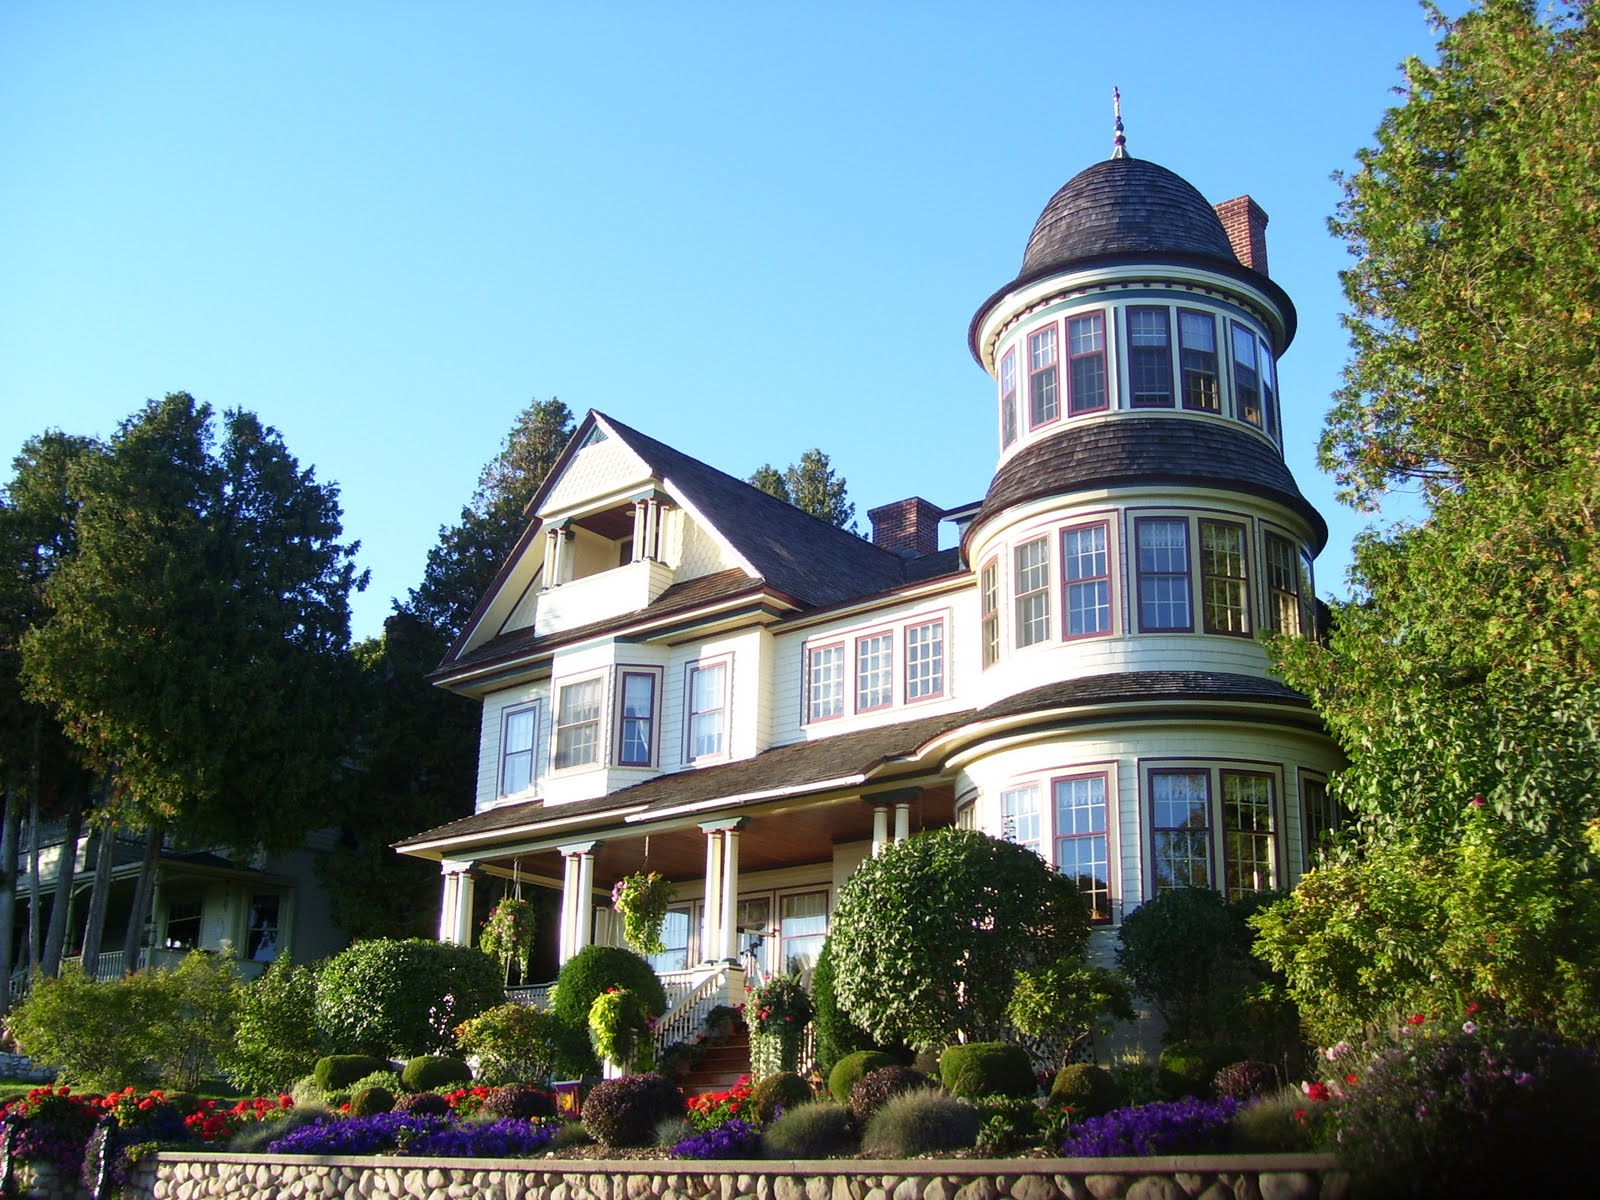 the splendid queen anne cottages of mackinaw island histarchobloghia the queen anne style of architecture that was prevalent from roughly 1880 1900 is also a sub group of the victorian style this highly decorative style